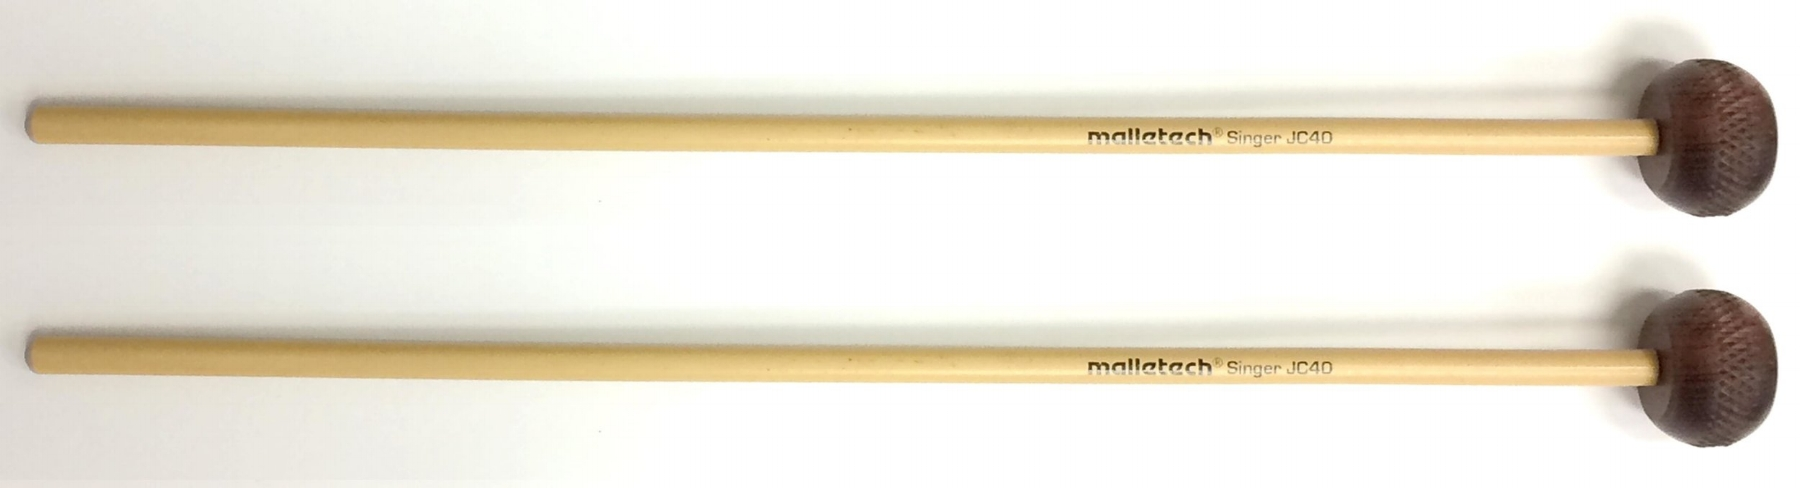 """The Malletech Go2 Series presents the Jon Singer Rosewood Xylophone Mallet. Jon has used wooden mallets on his xylophone for many years and found that he liked the heads best after the fibers started to break down. Malletech has found a way to """"pre-stress"""" the surface to get to that perfect, slightly softer attack right out of the bag.  Unlike many """"rosewood"""" mallets that are really other species of wood, these are made from marimba bars that didn't make the grade in Malletech's instrument department.  1-1/4-inch diameter certified Dalbergia Stevensoni Honduran Rosewood heads  7.5 to 8 mm diameter rattan  Available from Steve Weiss Music at:   https://www.steveweissmusic.com/product/malletech-go2-series-js40-jon-singer-custom-rosewood-xylophone-mallets/malletech-mallets#full-description"""